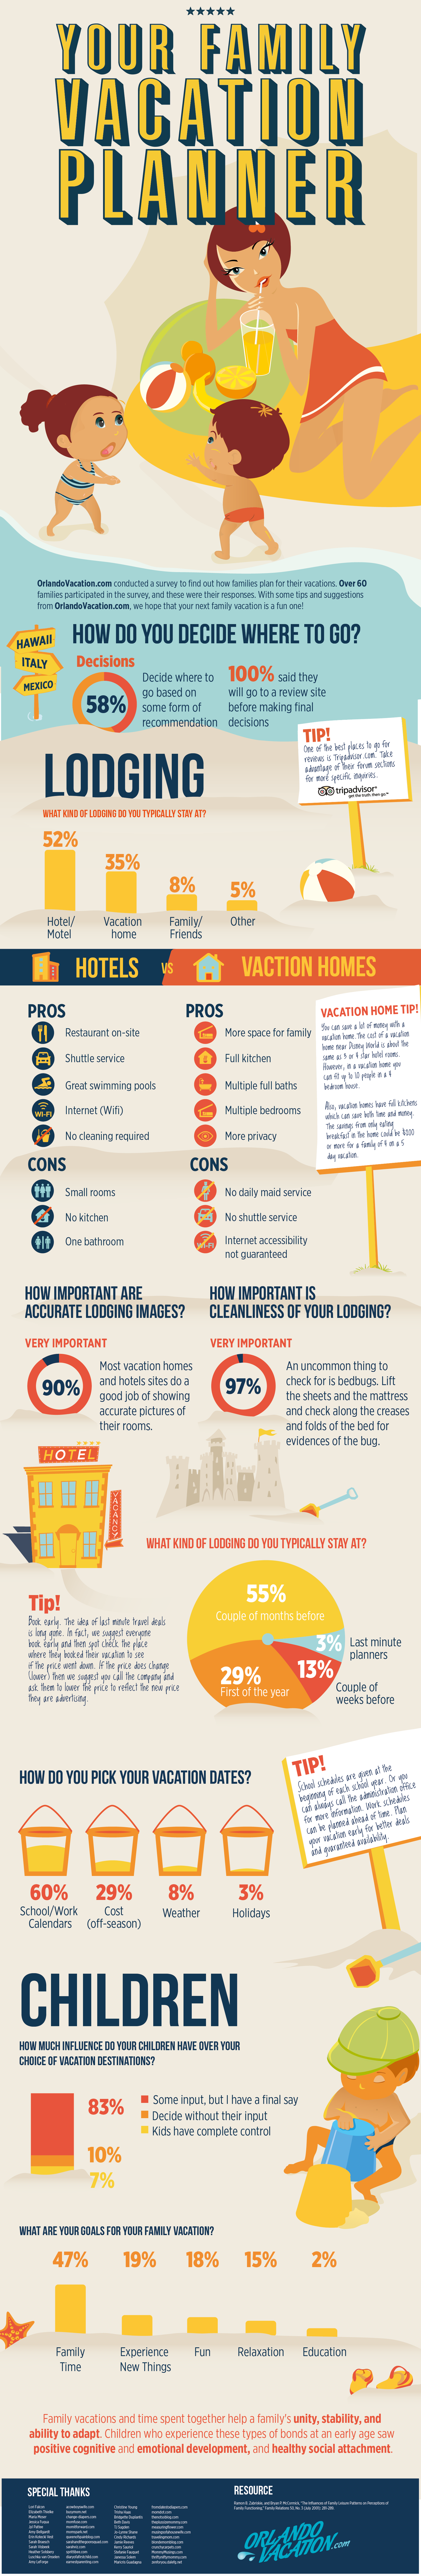 Your Family Vacation Planner Infographic